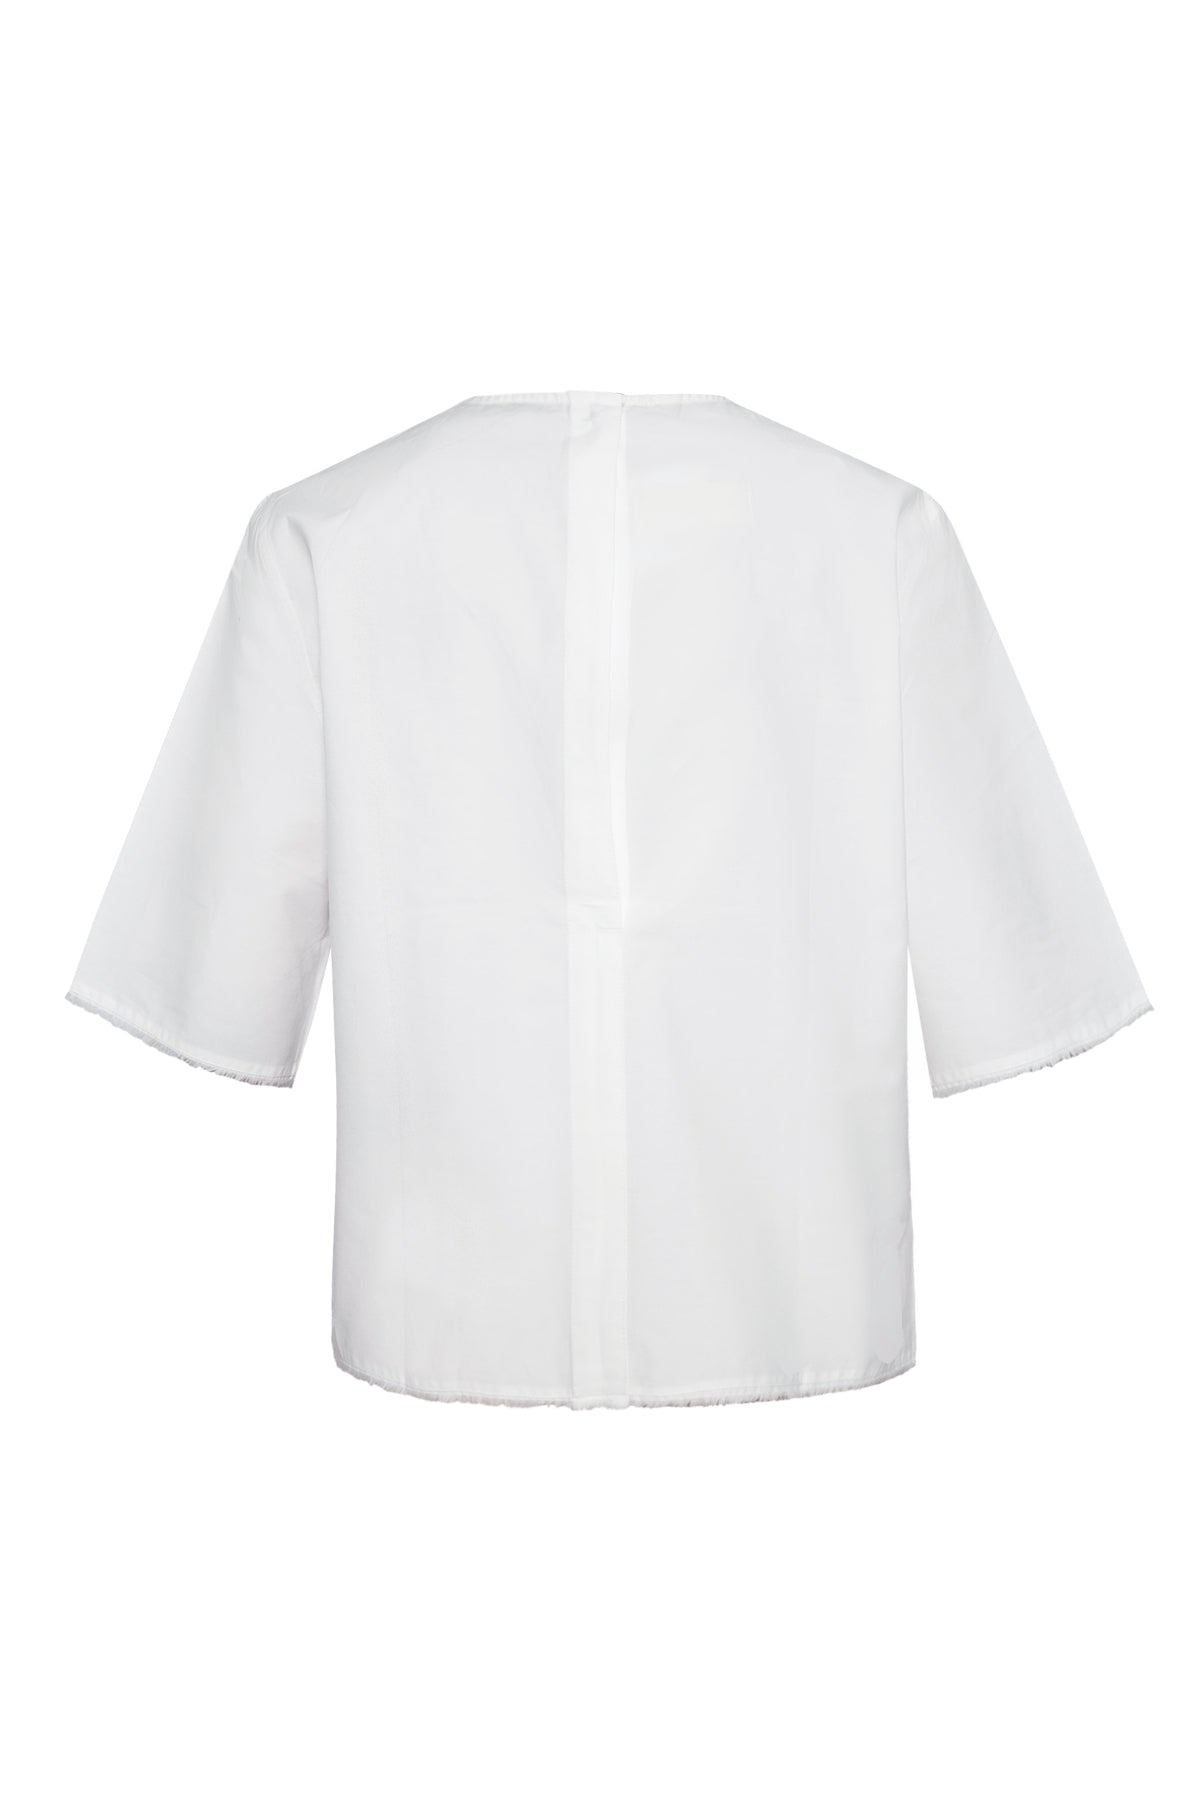 Frayed Edges Crew Neck Cotton Shirt